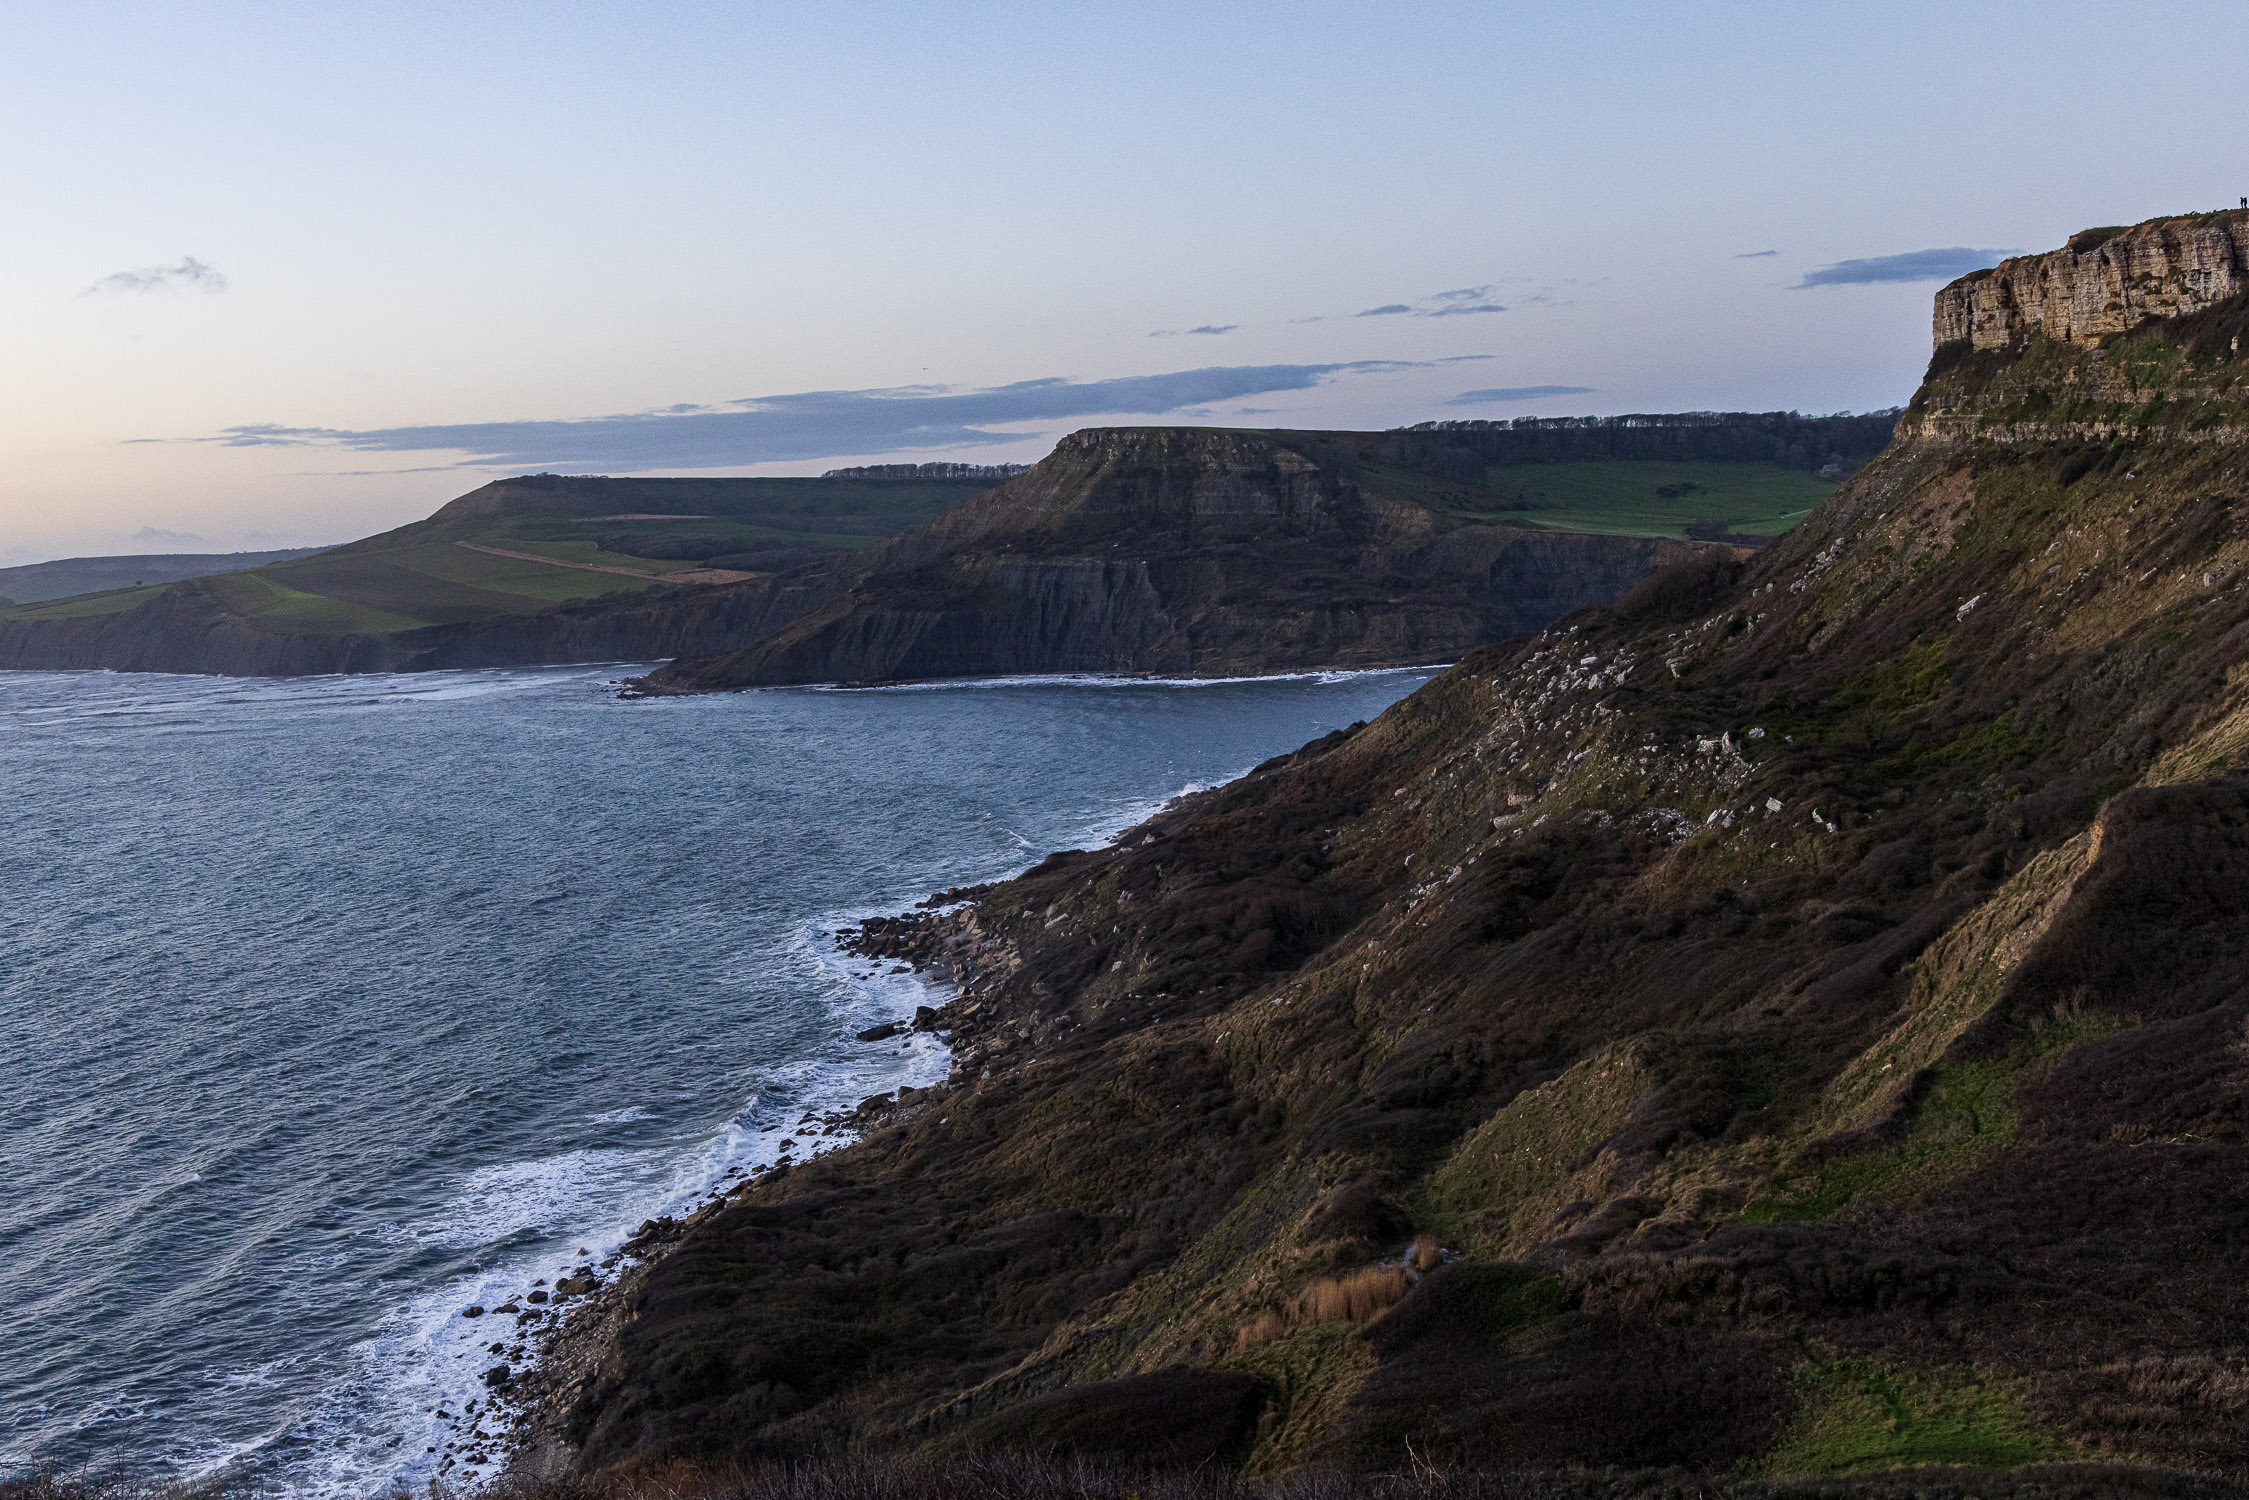 Dusk over the Purbeck Coast